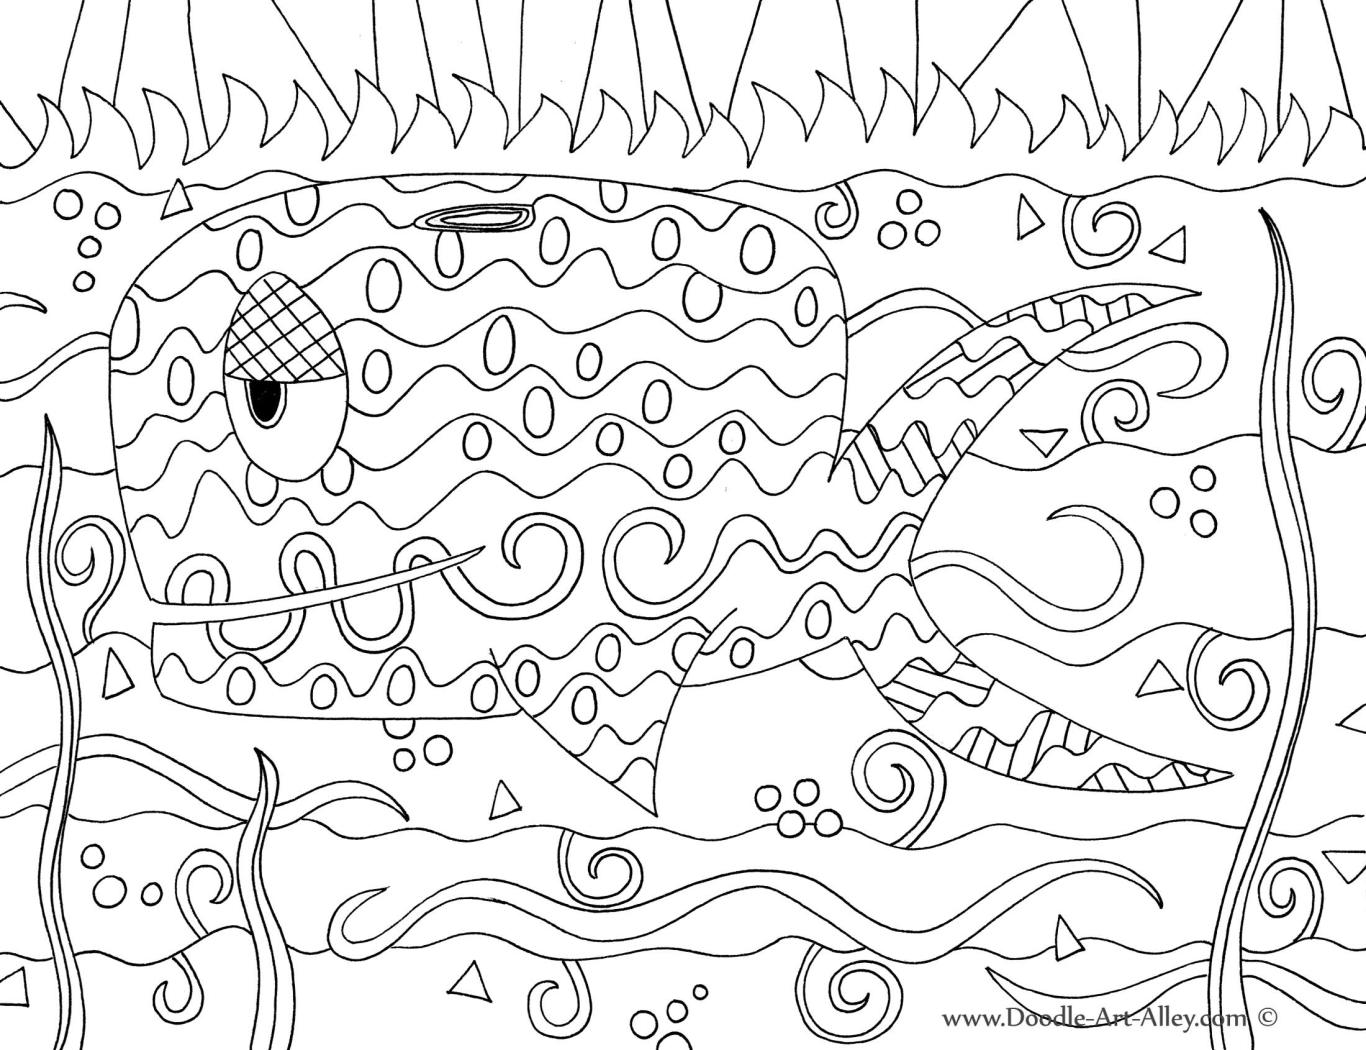 1366x1050 Ocean Animal Coloring Pages Doodle Art Alley Art Class